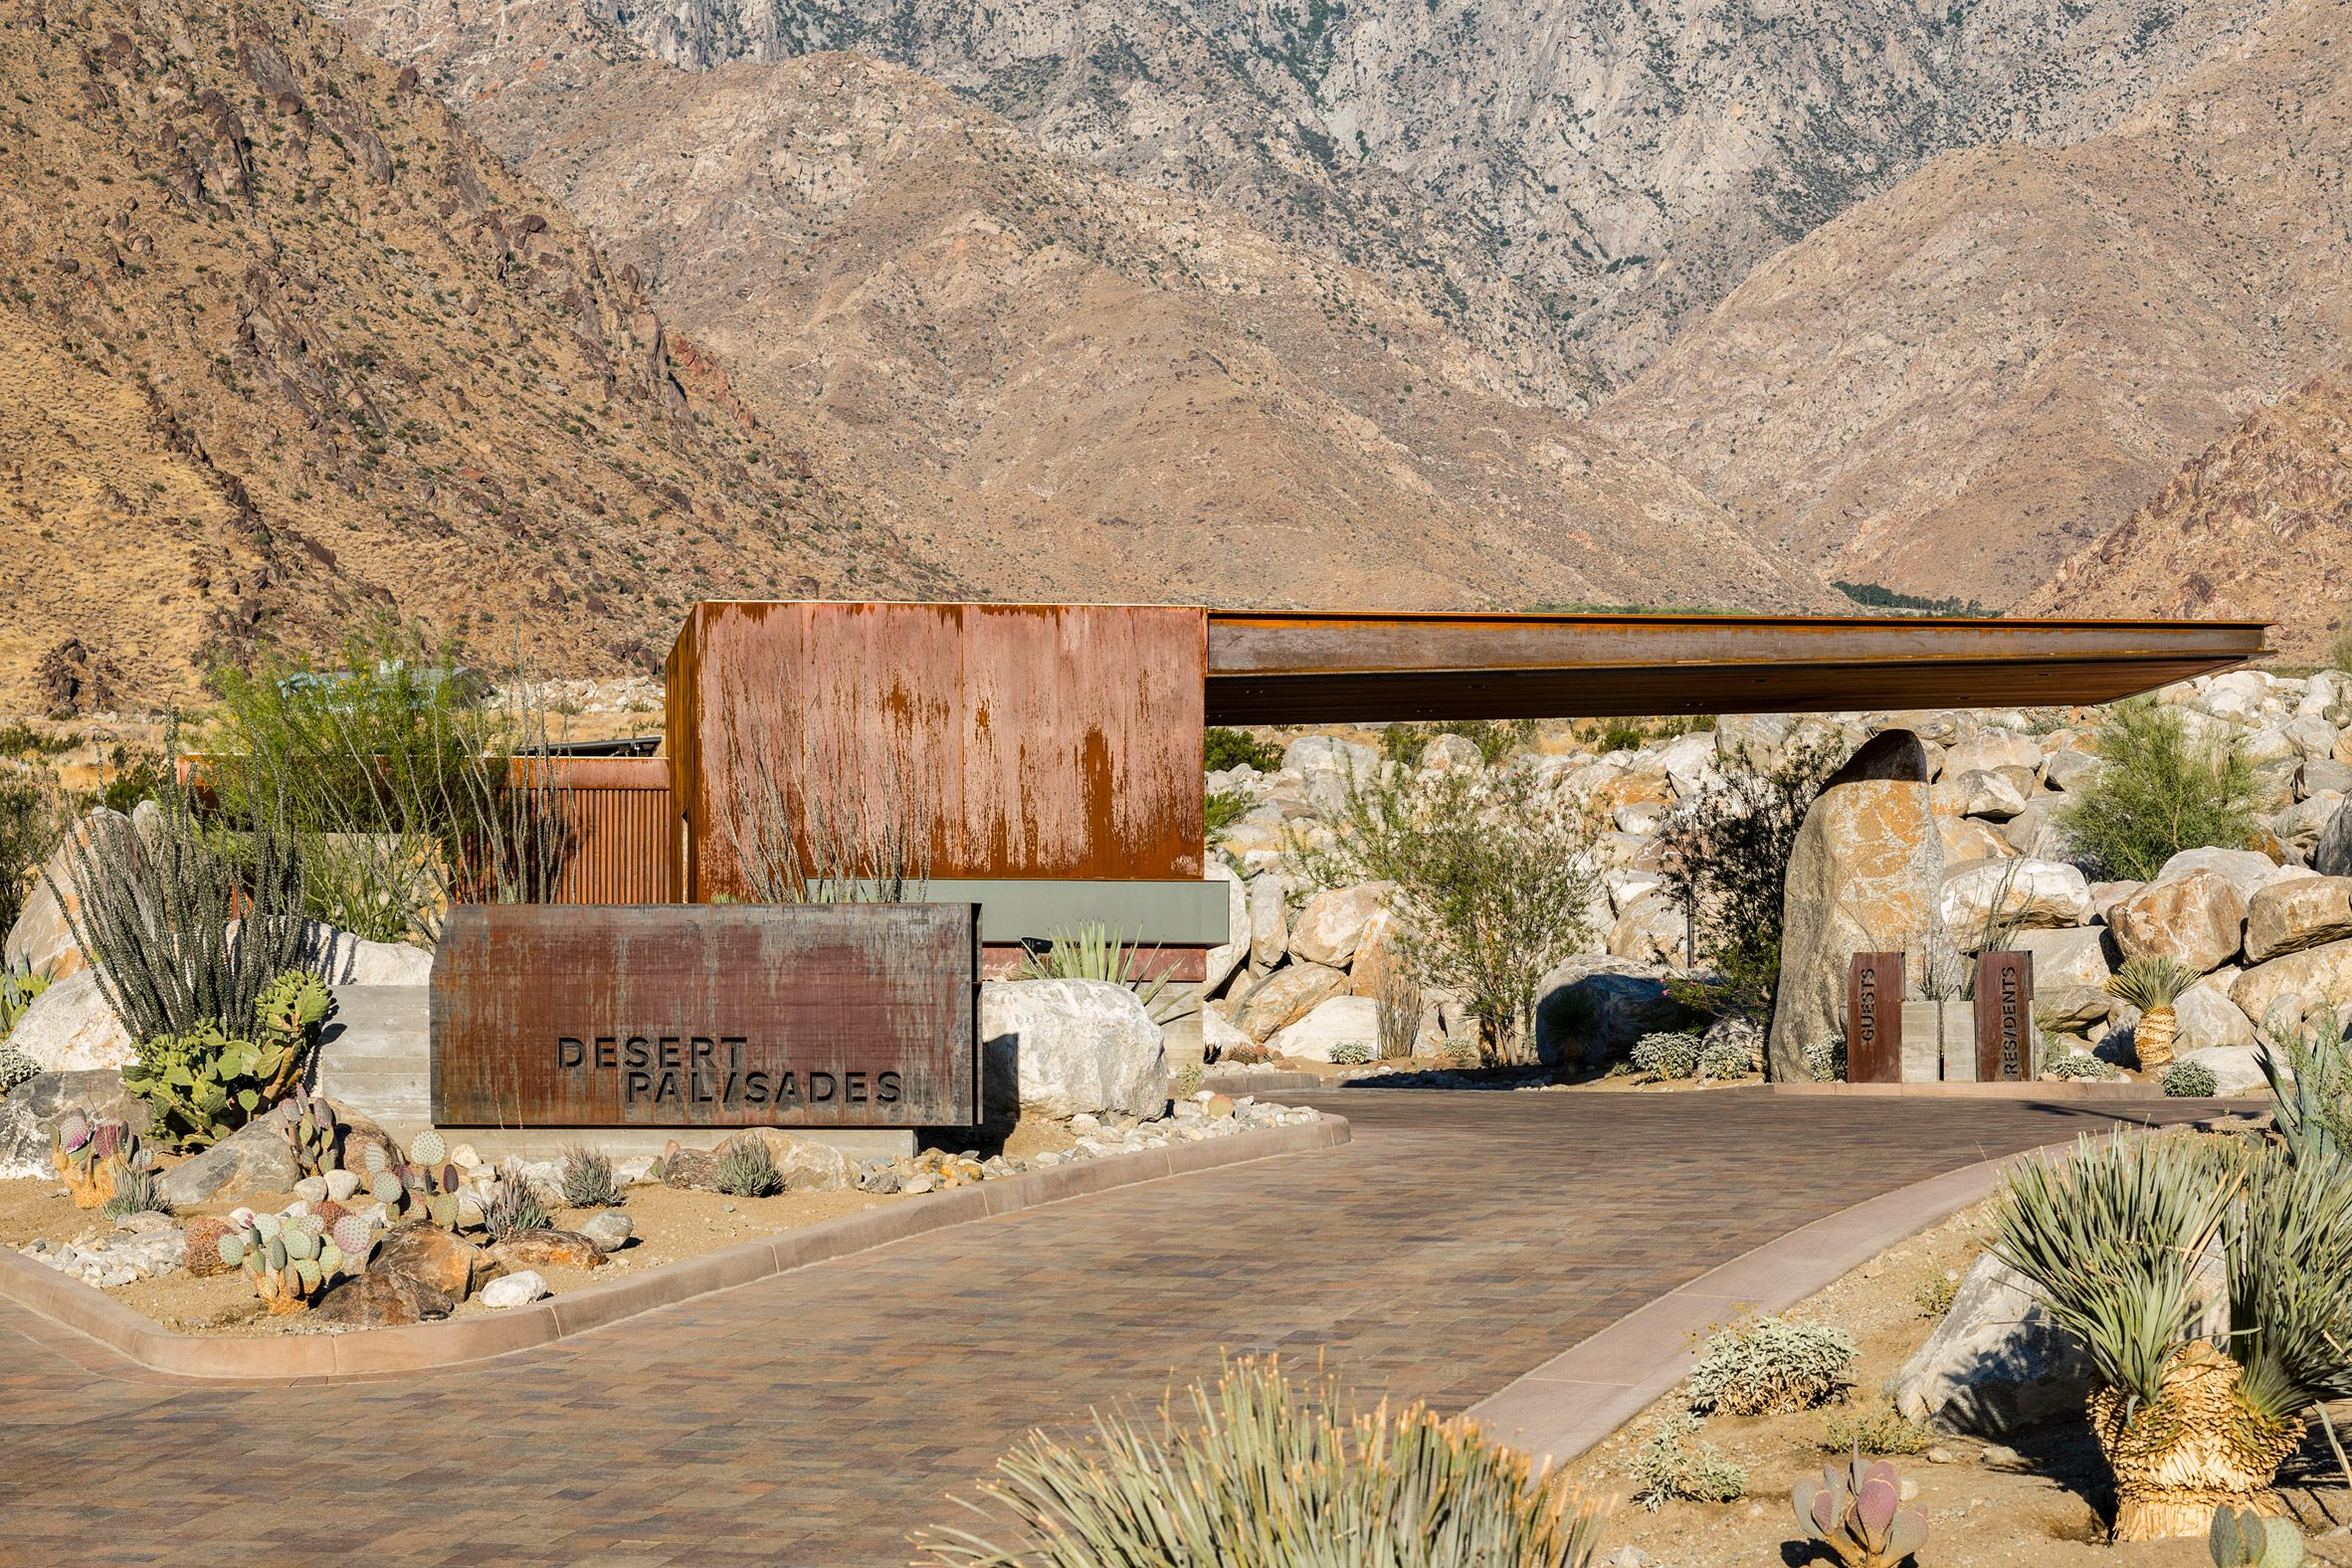 Cantilevered roof extends from Palm Springs guardhouse by